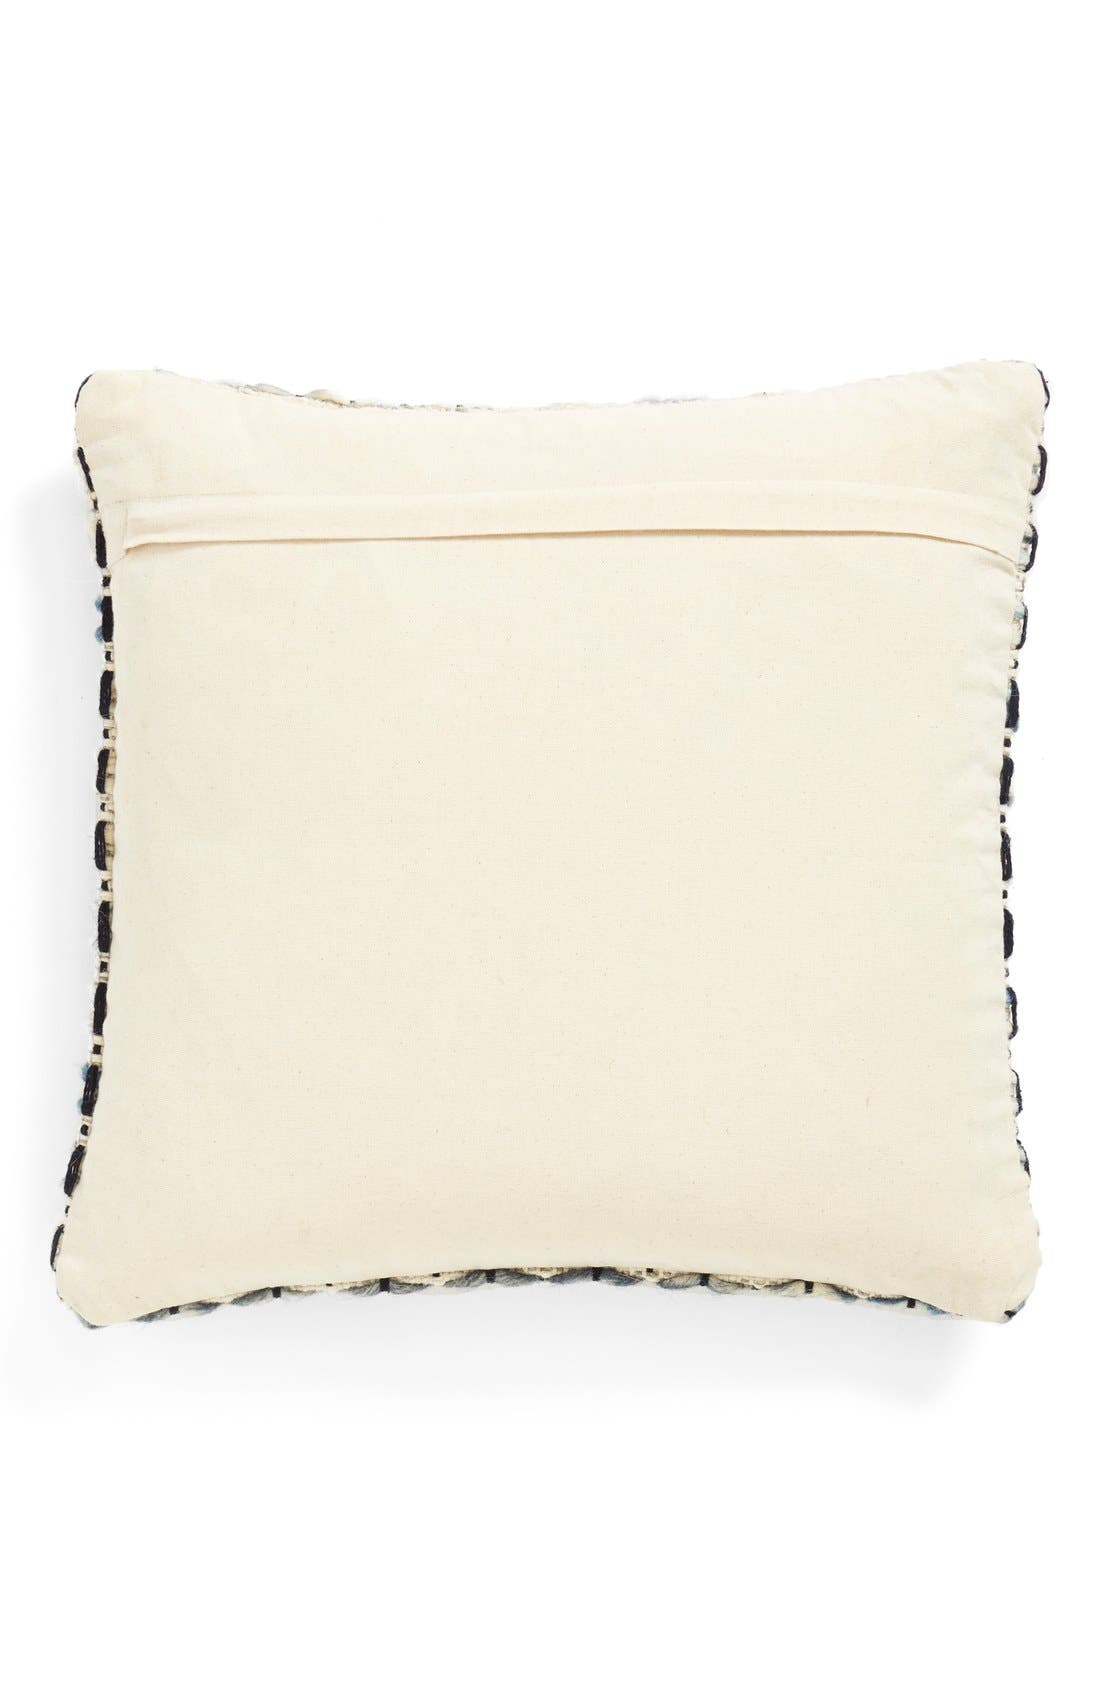 Alternate Image 2  - Brentwood Originals 'Knitted Lines' Jute Accent Pillow